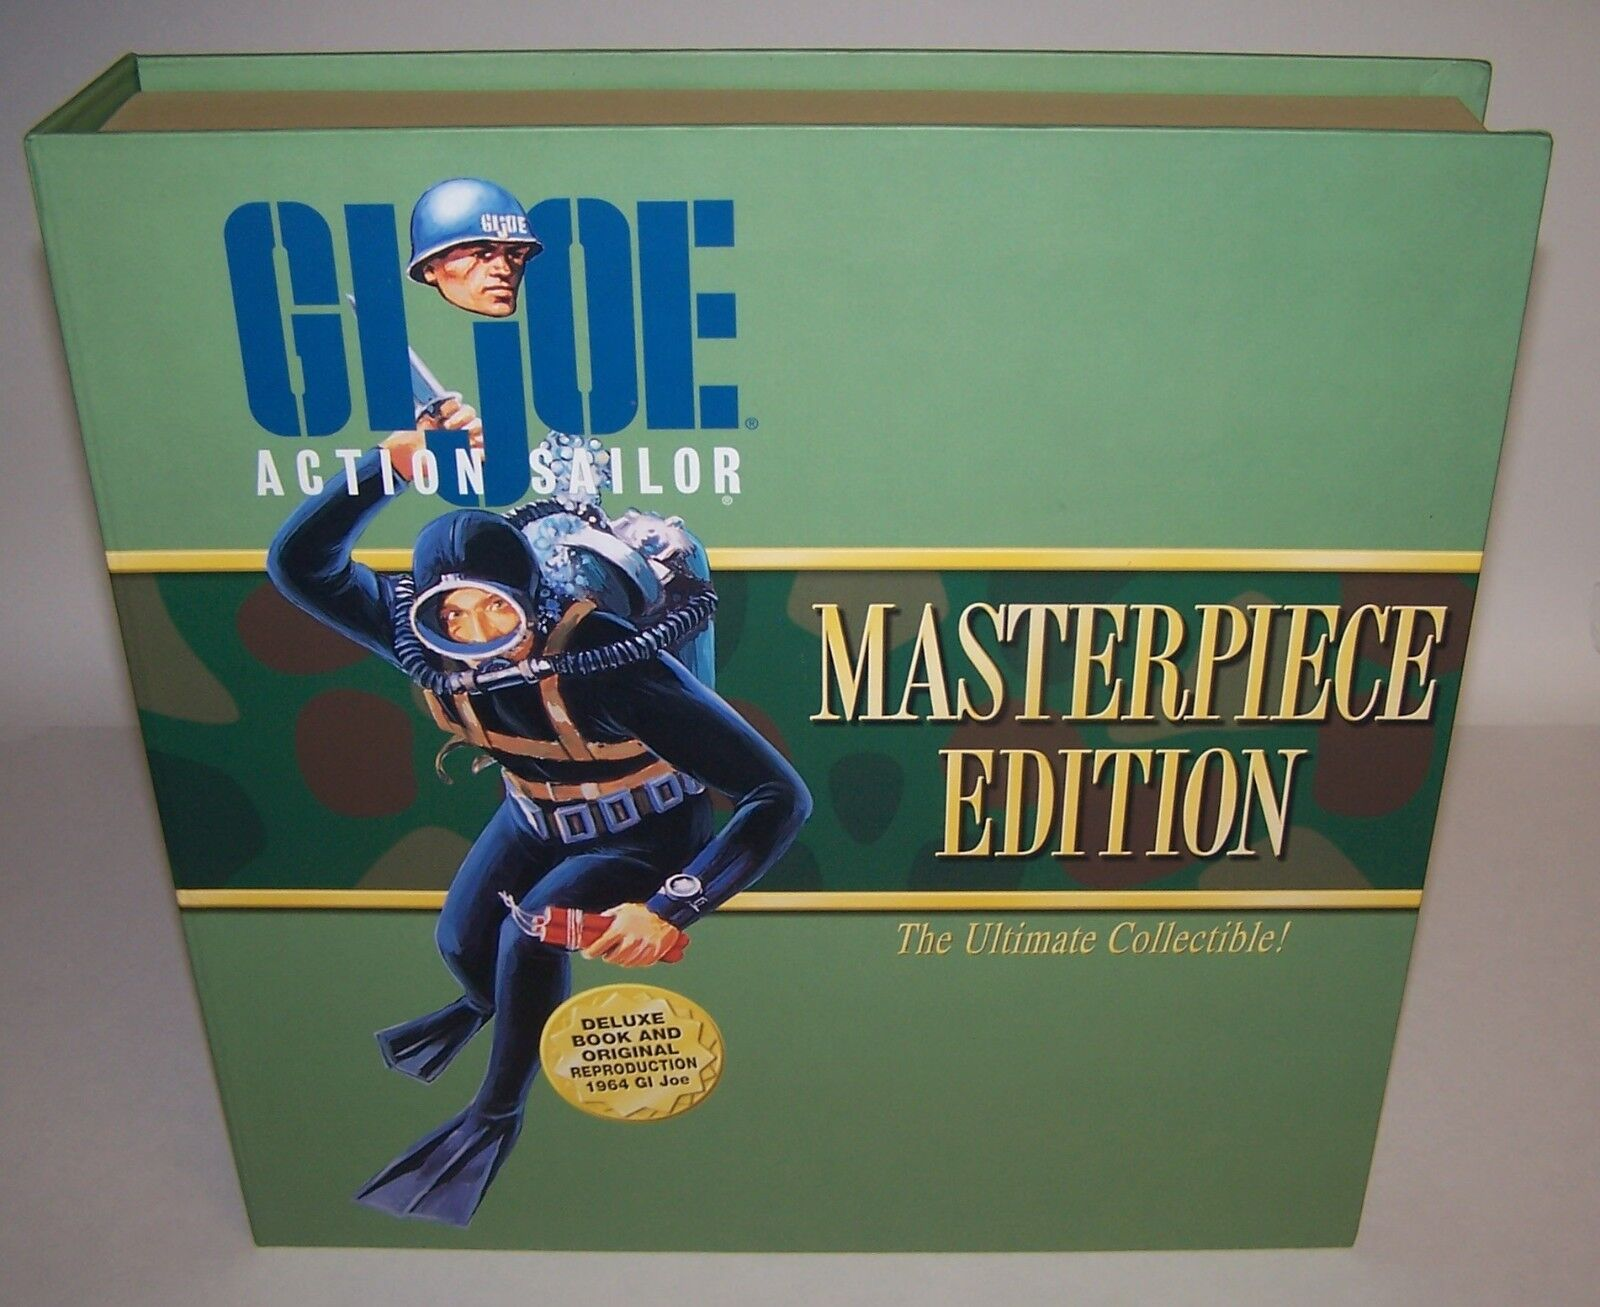 GI Joe Action Sailor The Story Behind The Legend Masterpiece Ed 1964 Repro